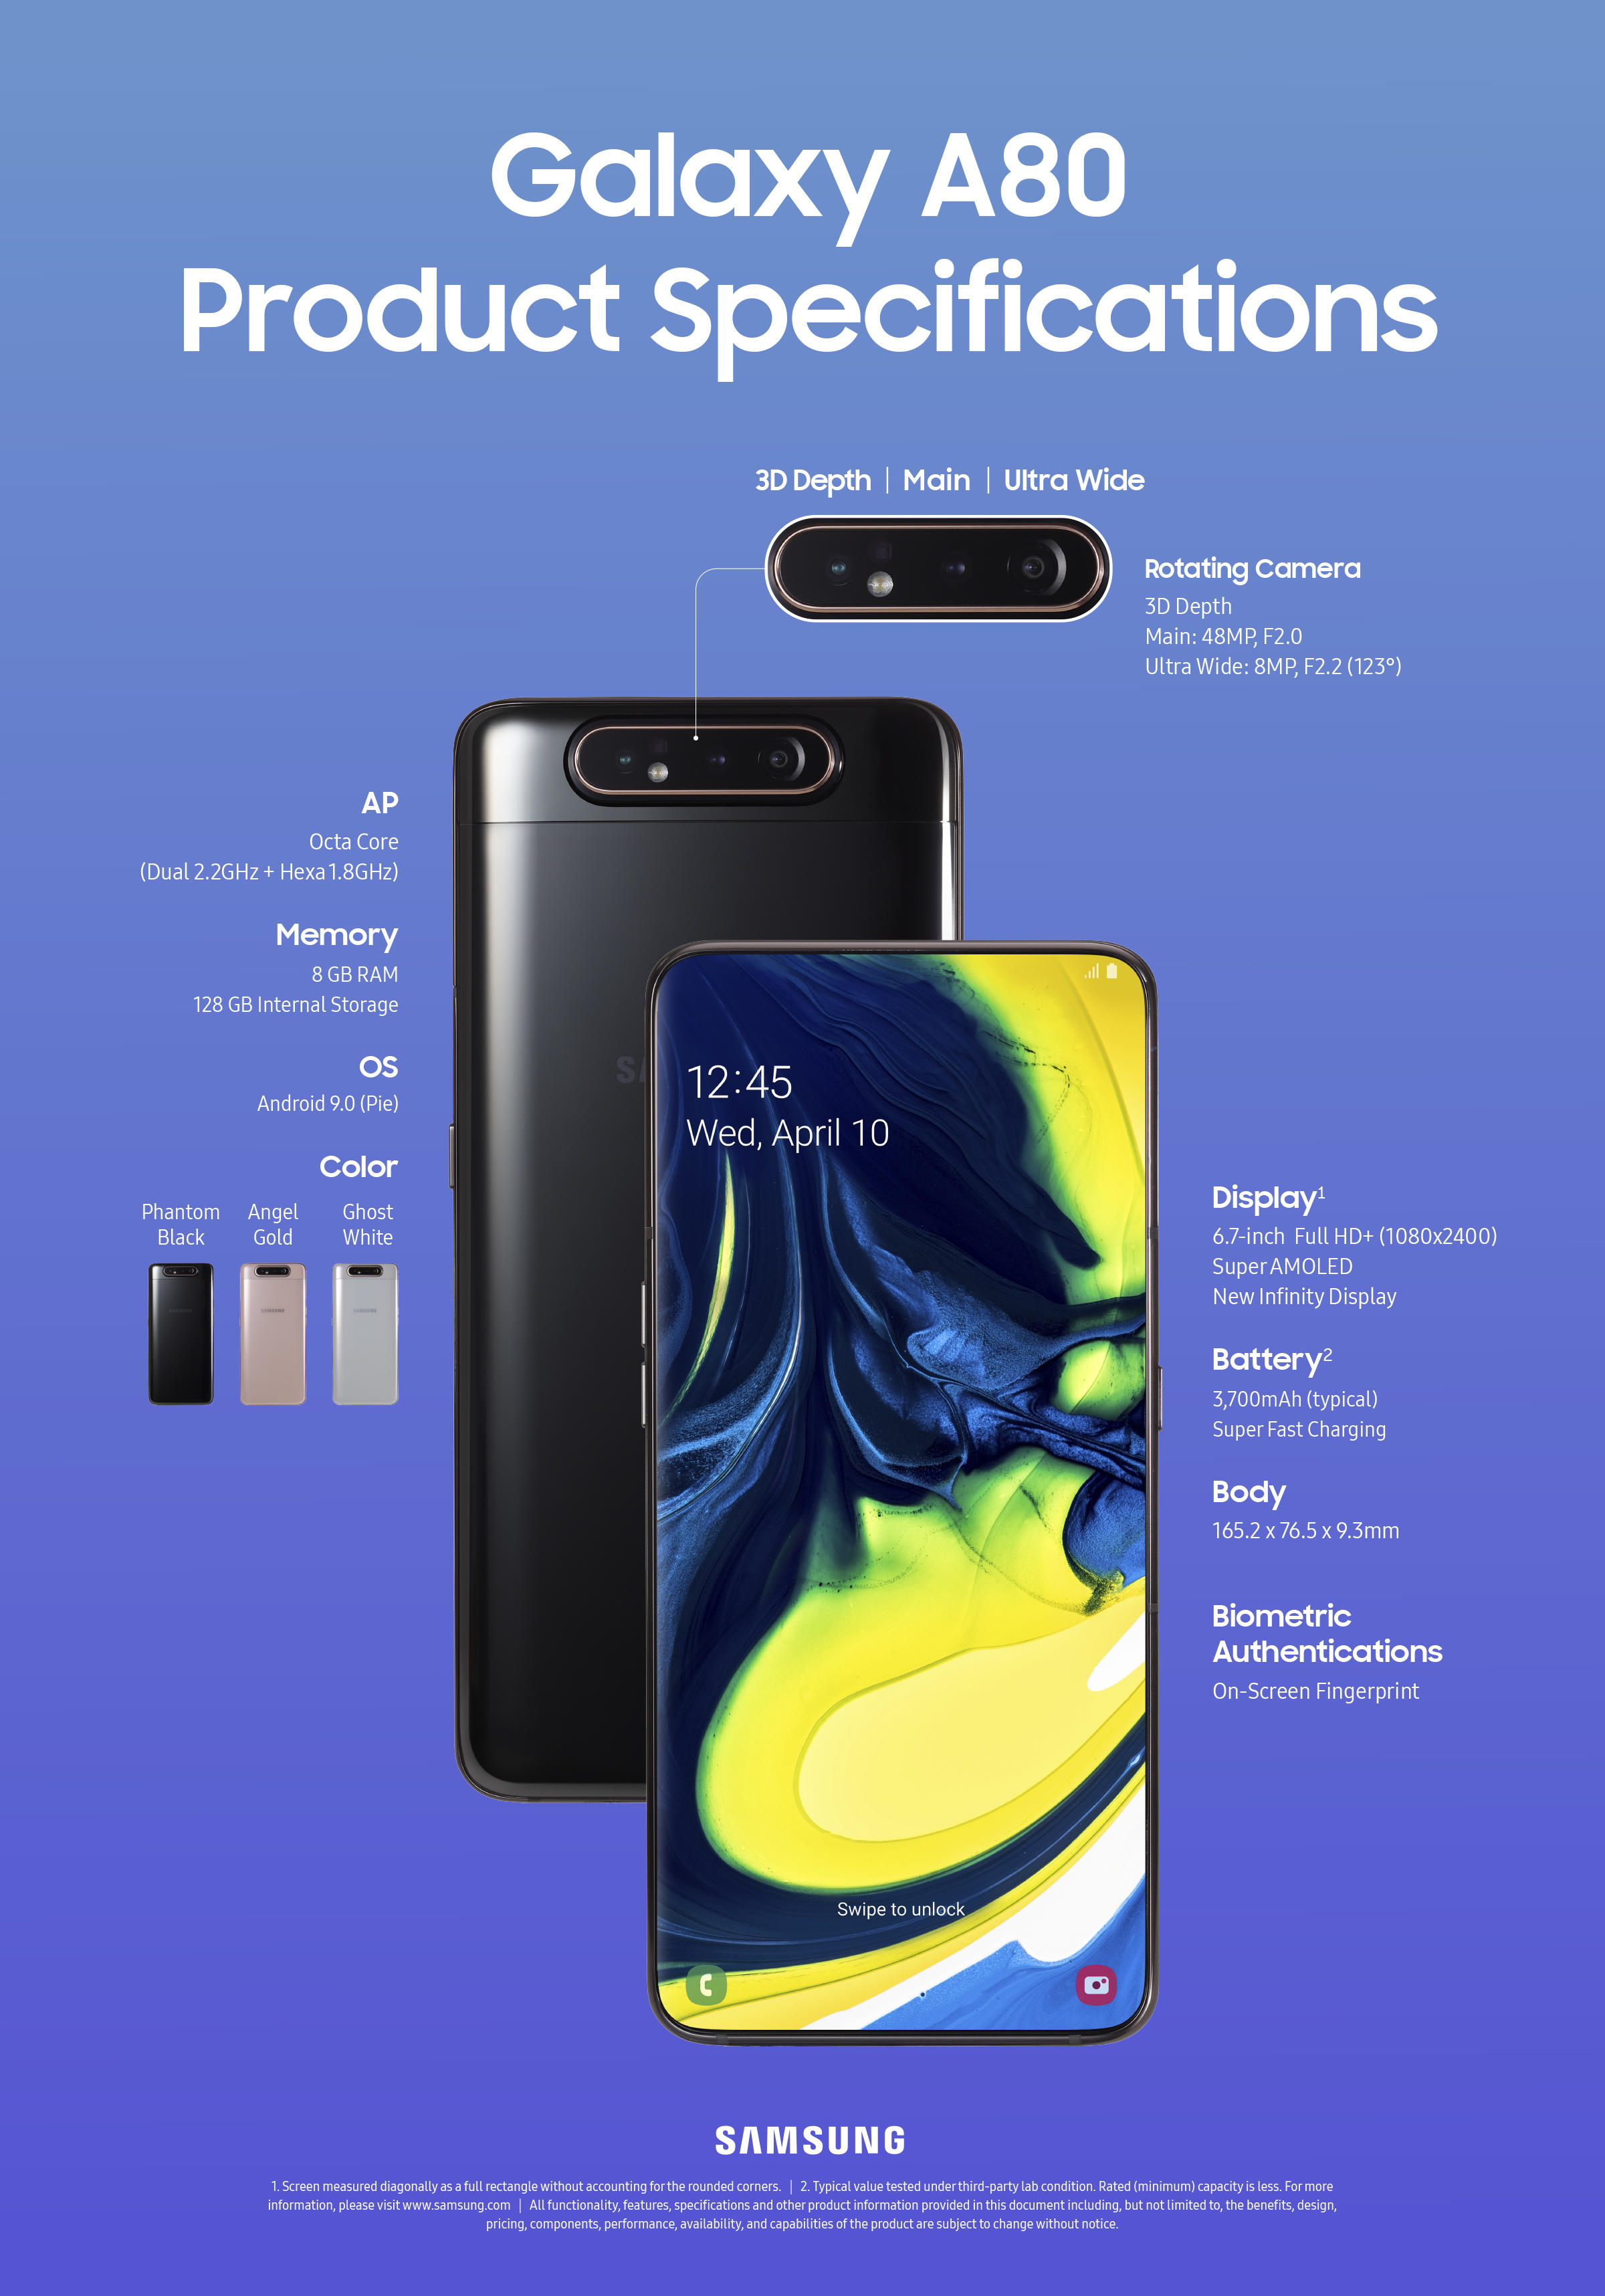 Samsung Galaxy A80 Product Specifications